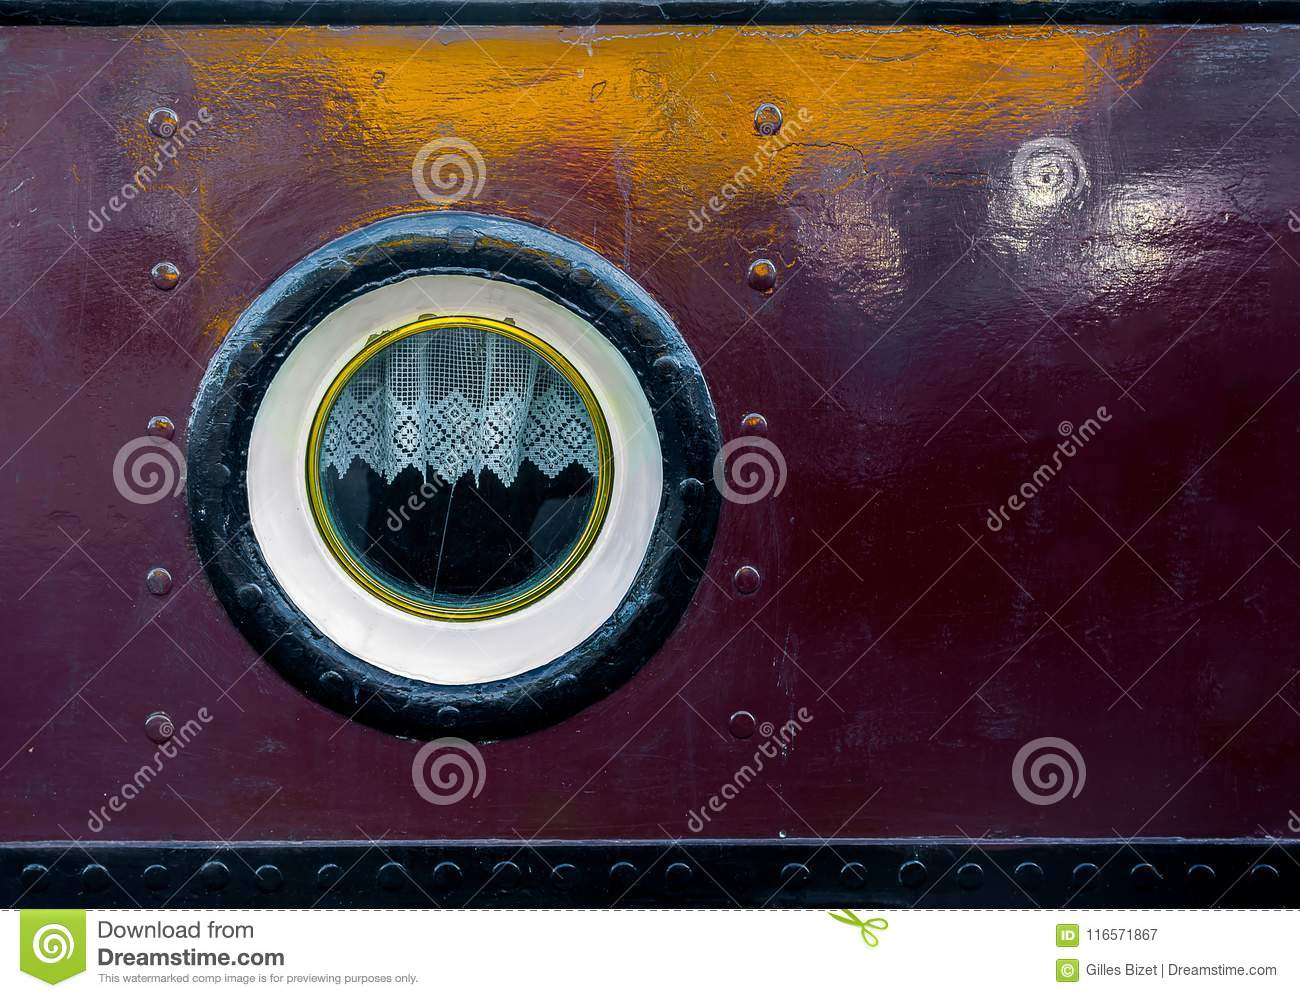 The eye of the barge